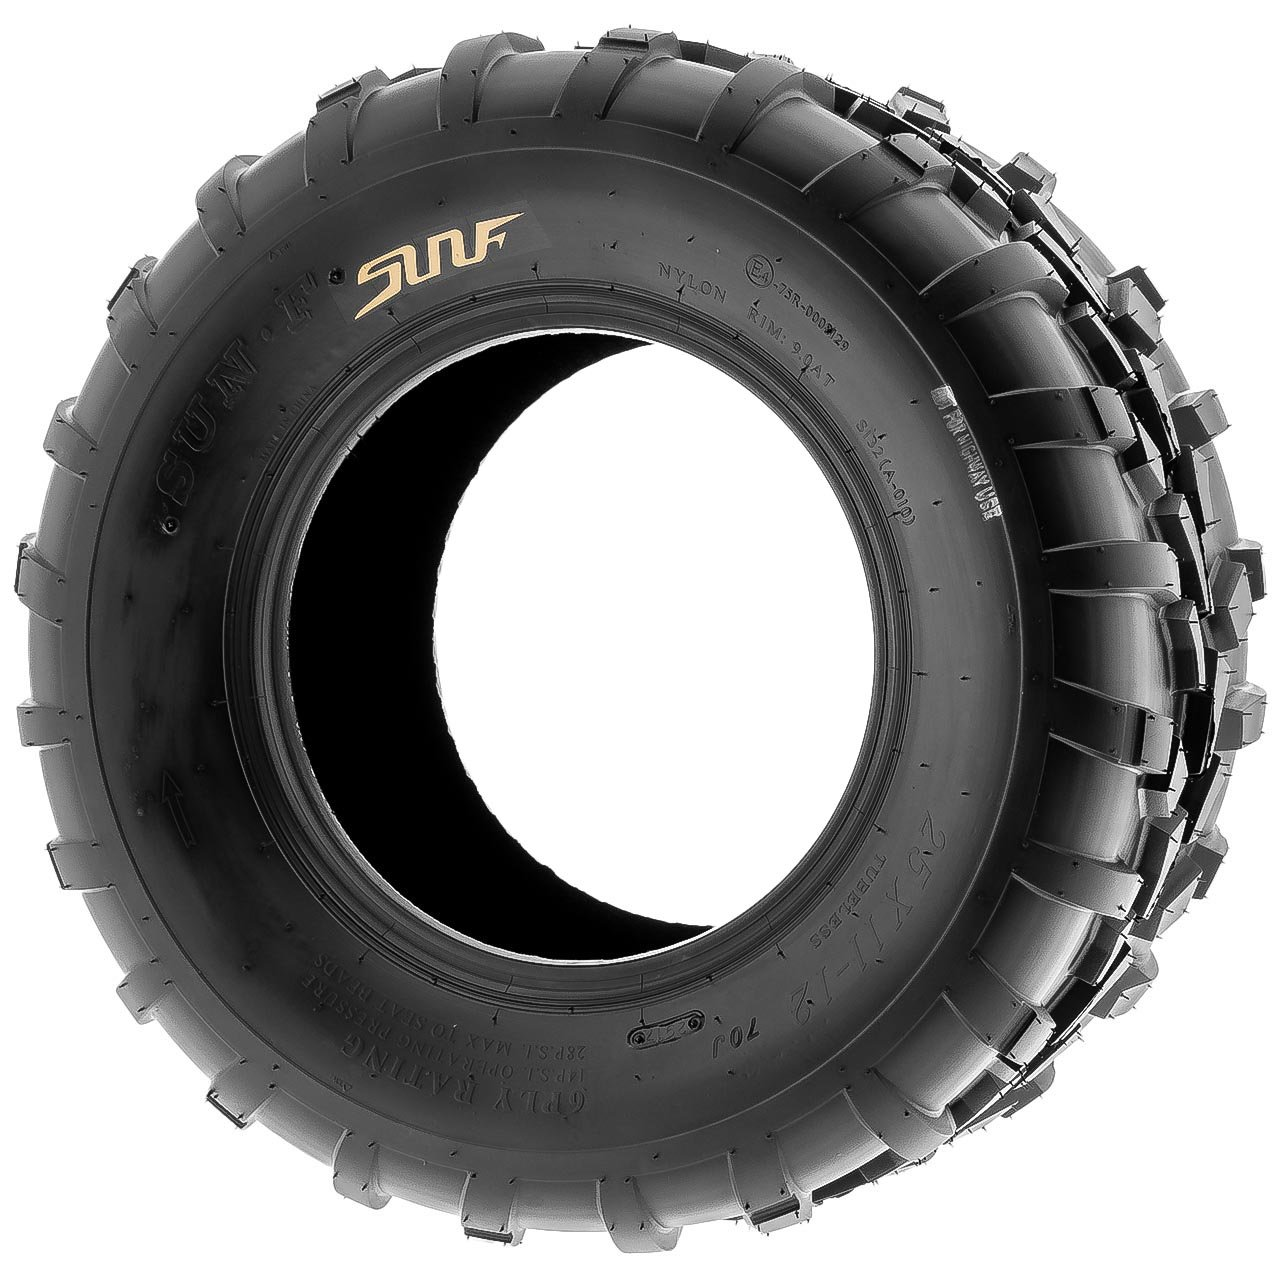 Pair of 2 SunF 25x11-12 AT-XC ATV/UTV Off-Road Tires , 6PR , Directional Knobby Tread | A010 by SunF (Image #3)